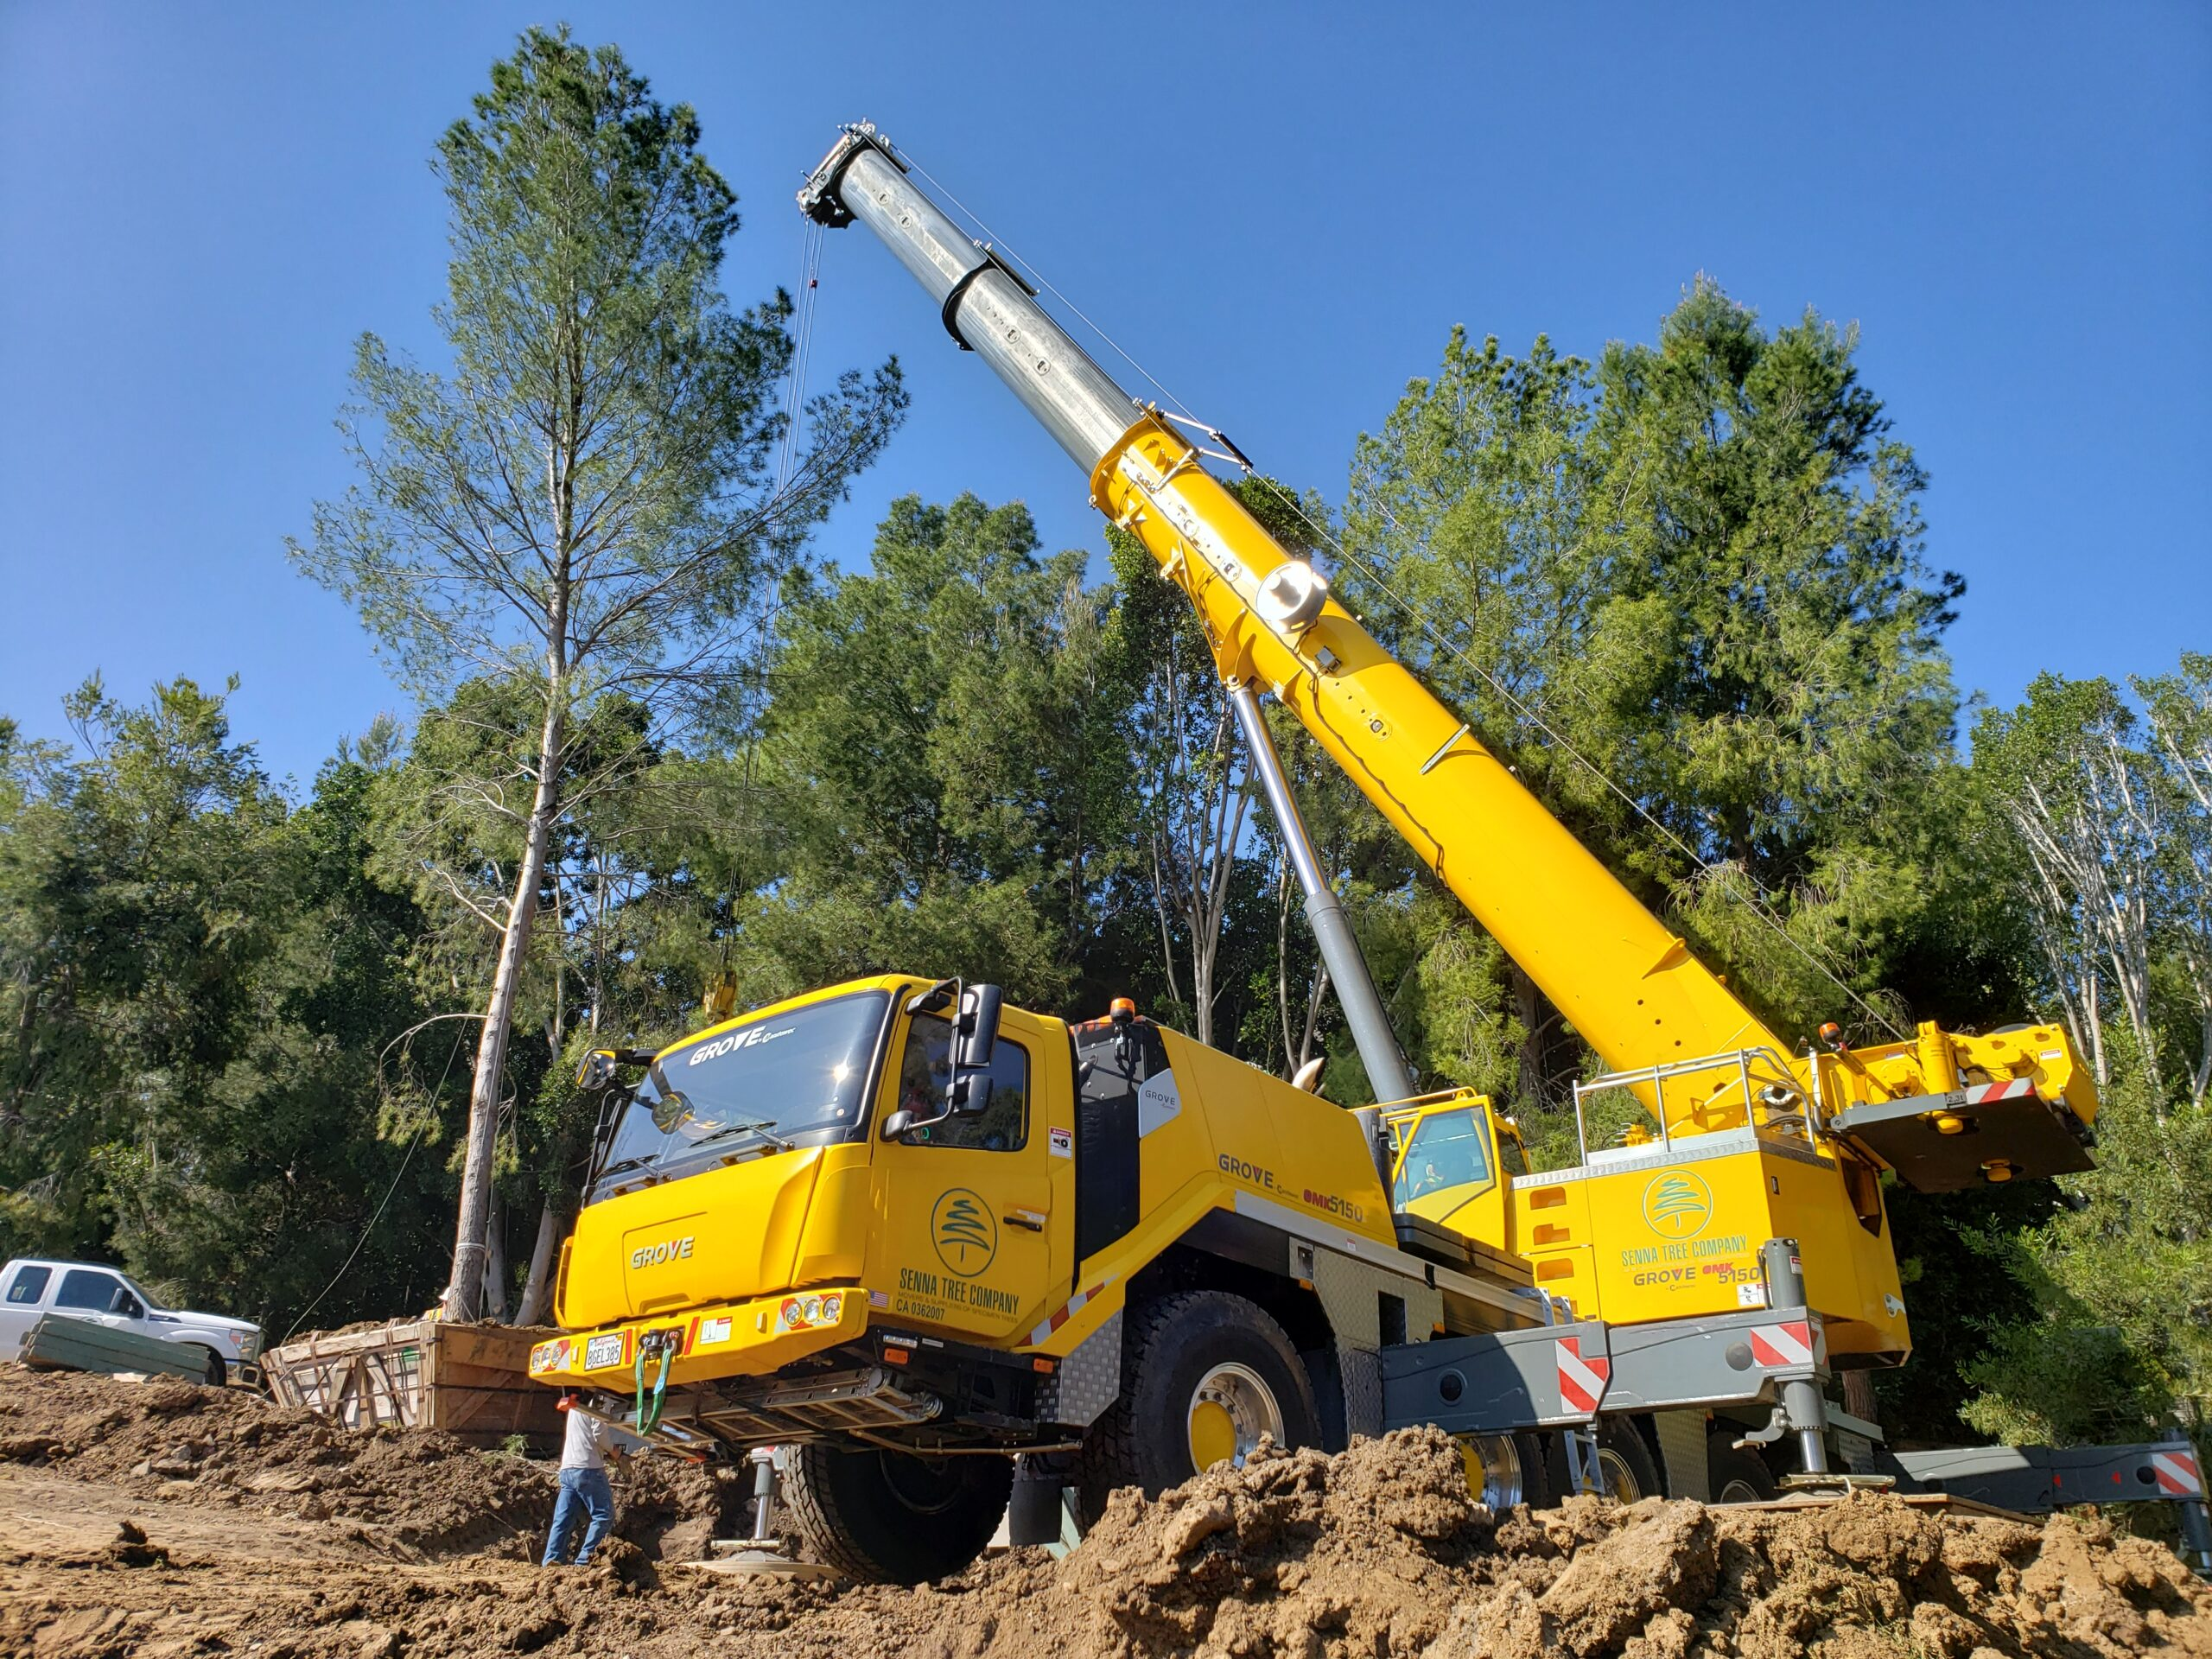 Crane and Equipment rental to move trees in the greater los angeles area